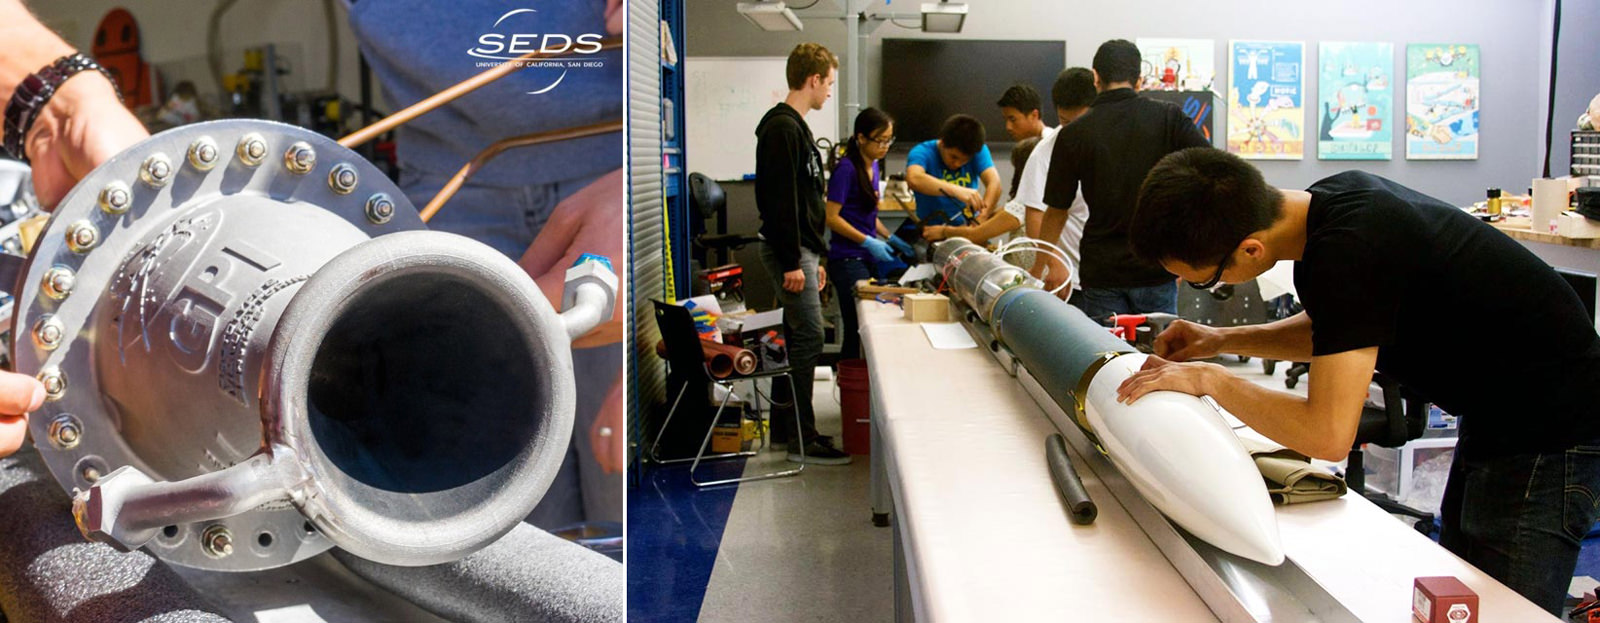 Vulcan-1-Rocket-3D-Printed-Engine-2